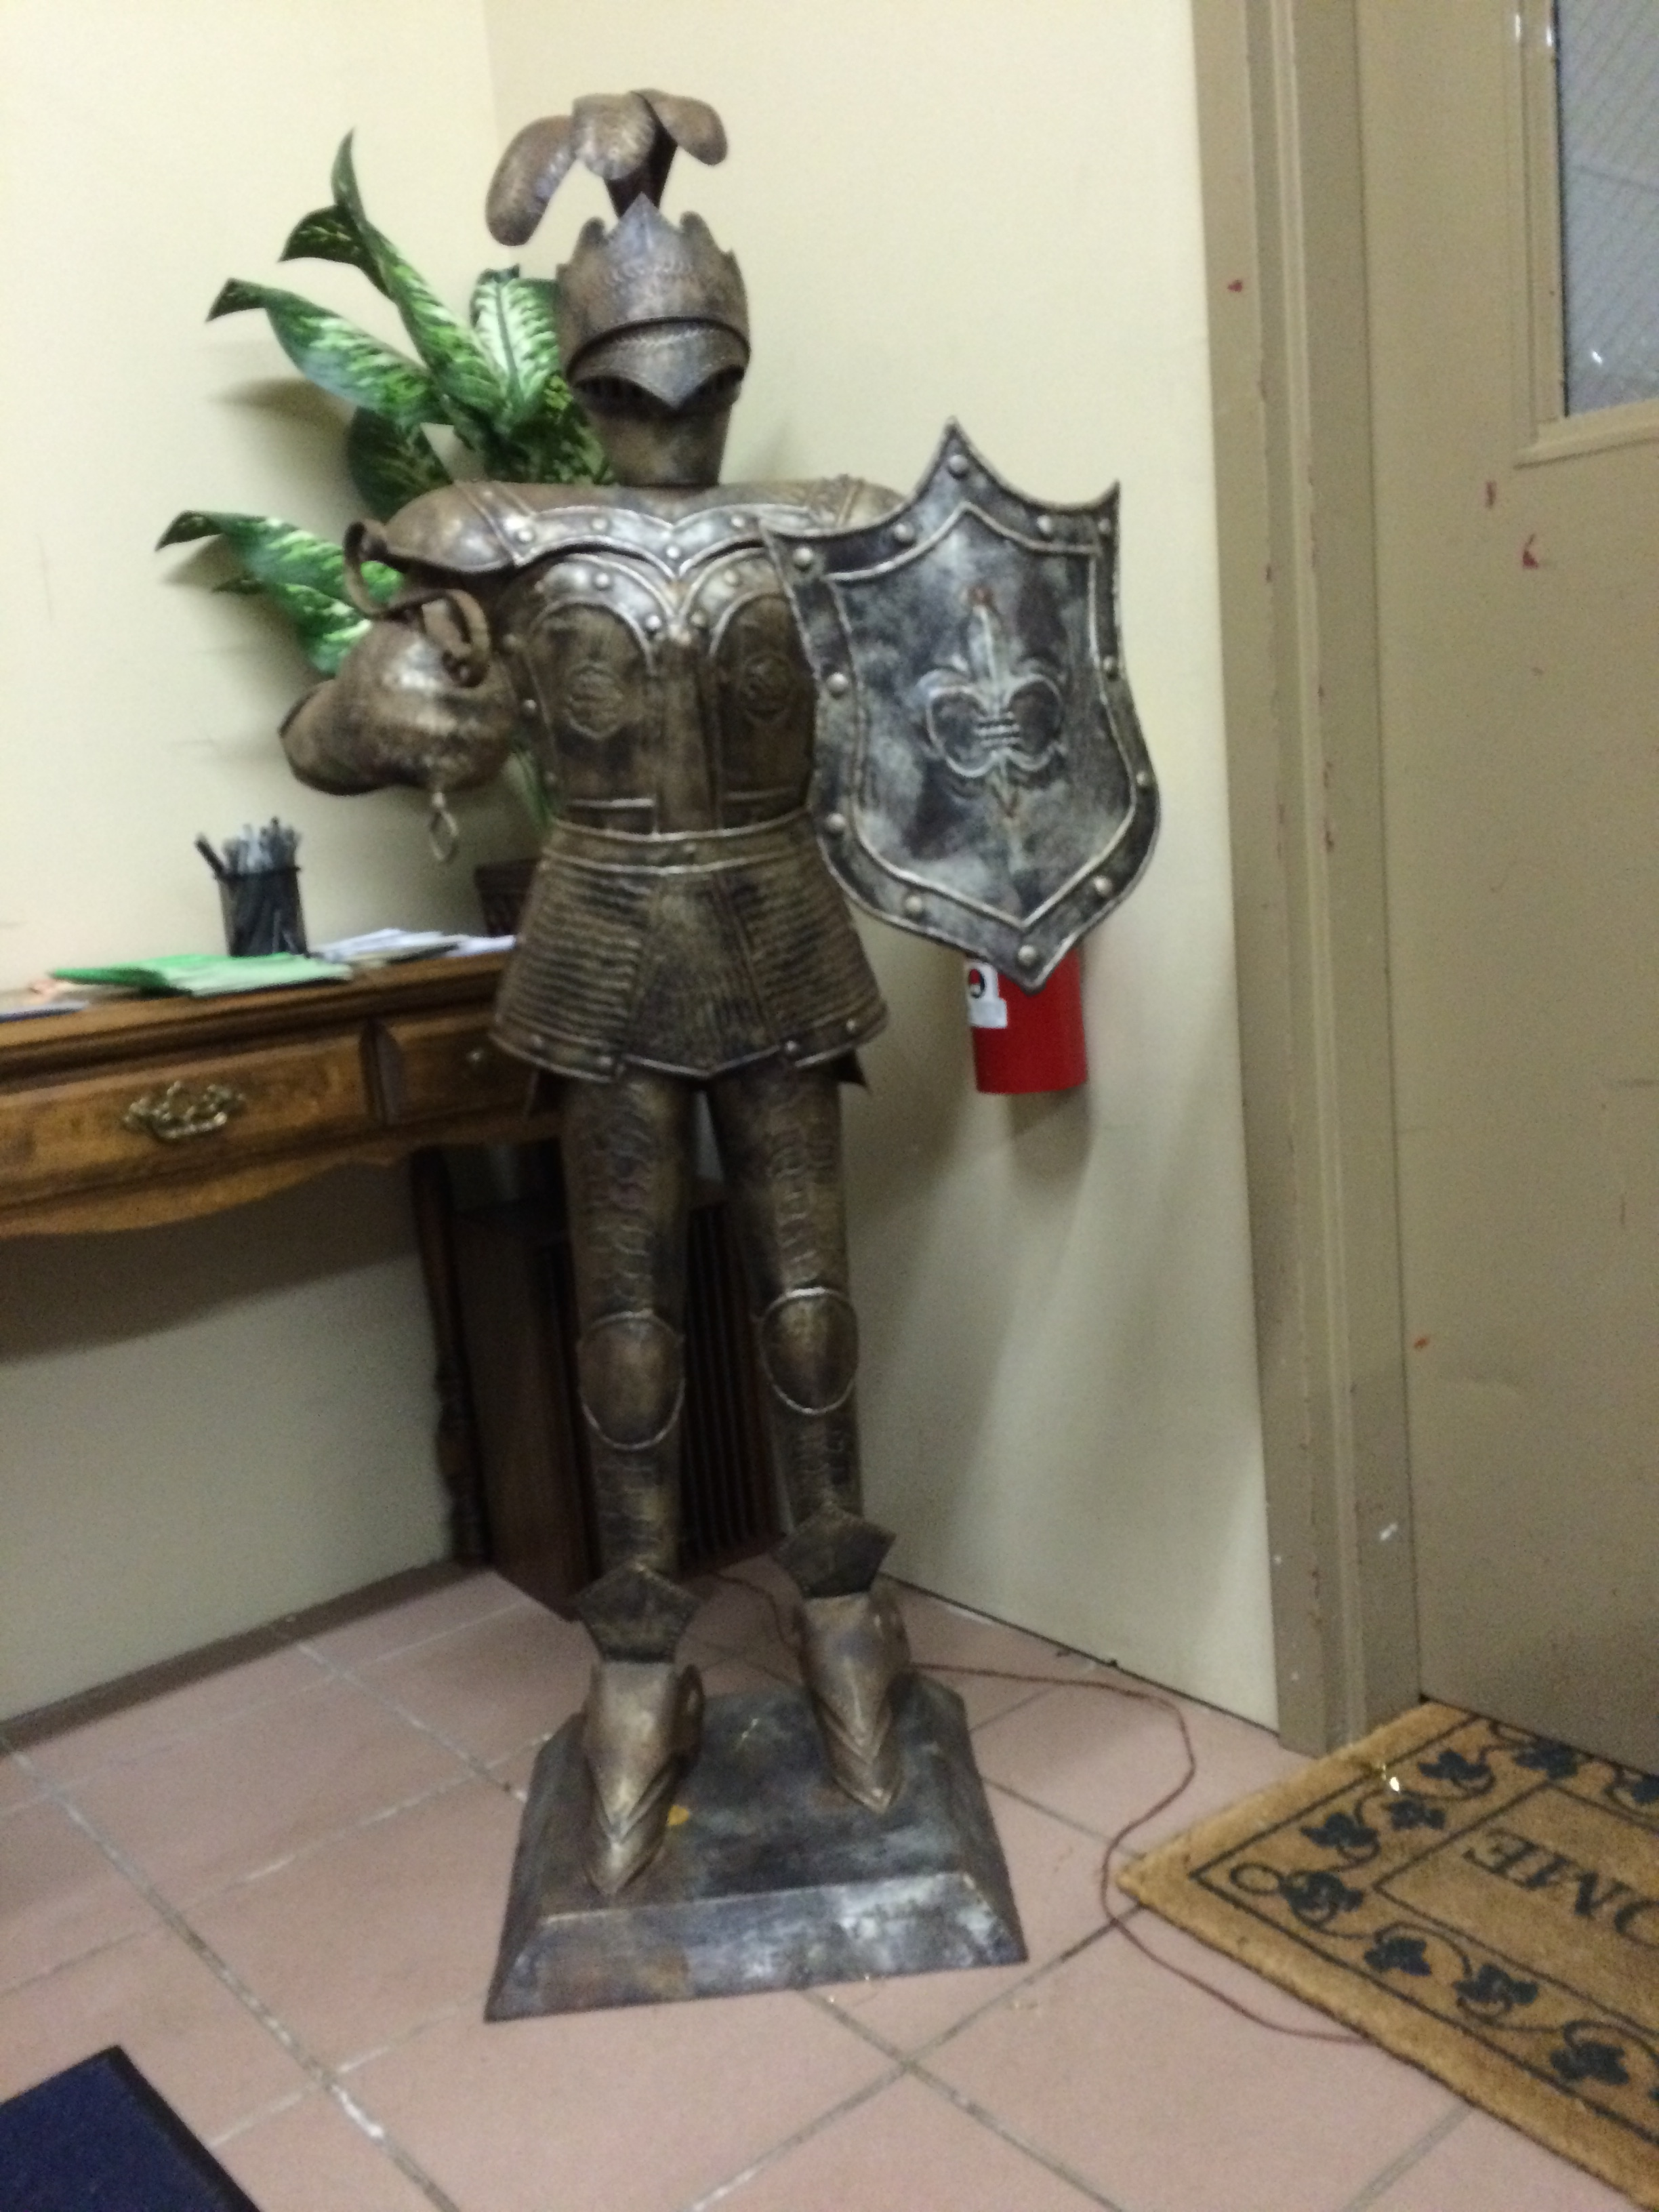 Church of the City Mascot - they do not mess around!